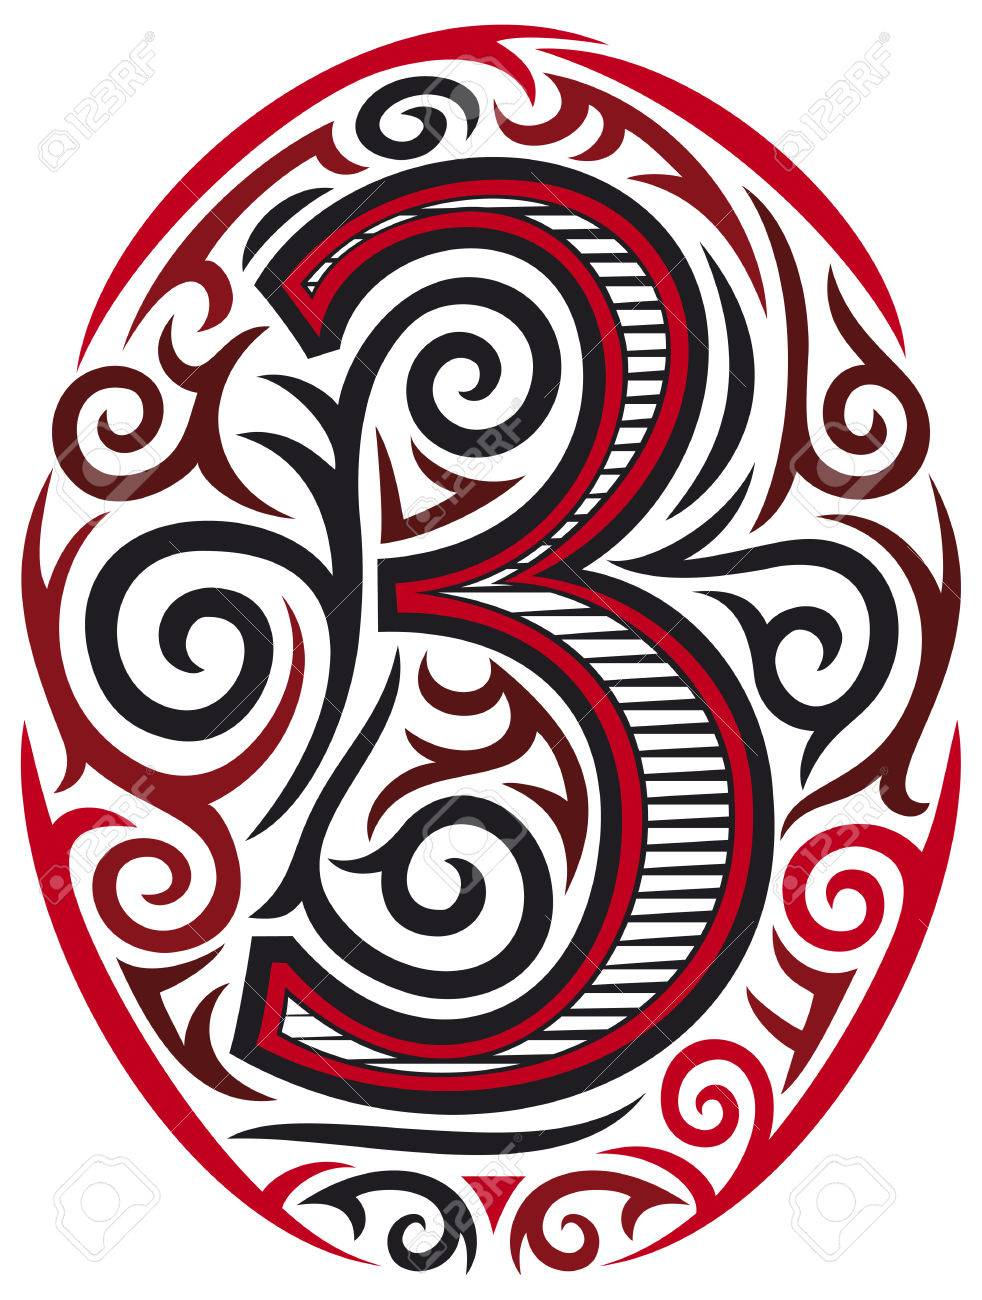 59775c0b5 Number Three Tattoo Tribal Design Royalty Free Cliparts, Vectors ...